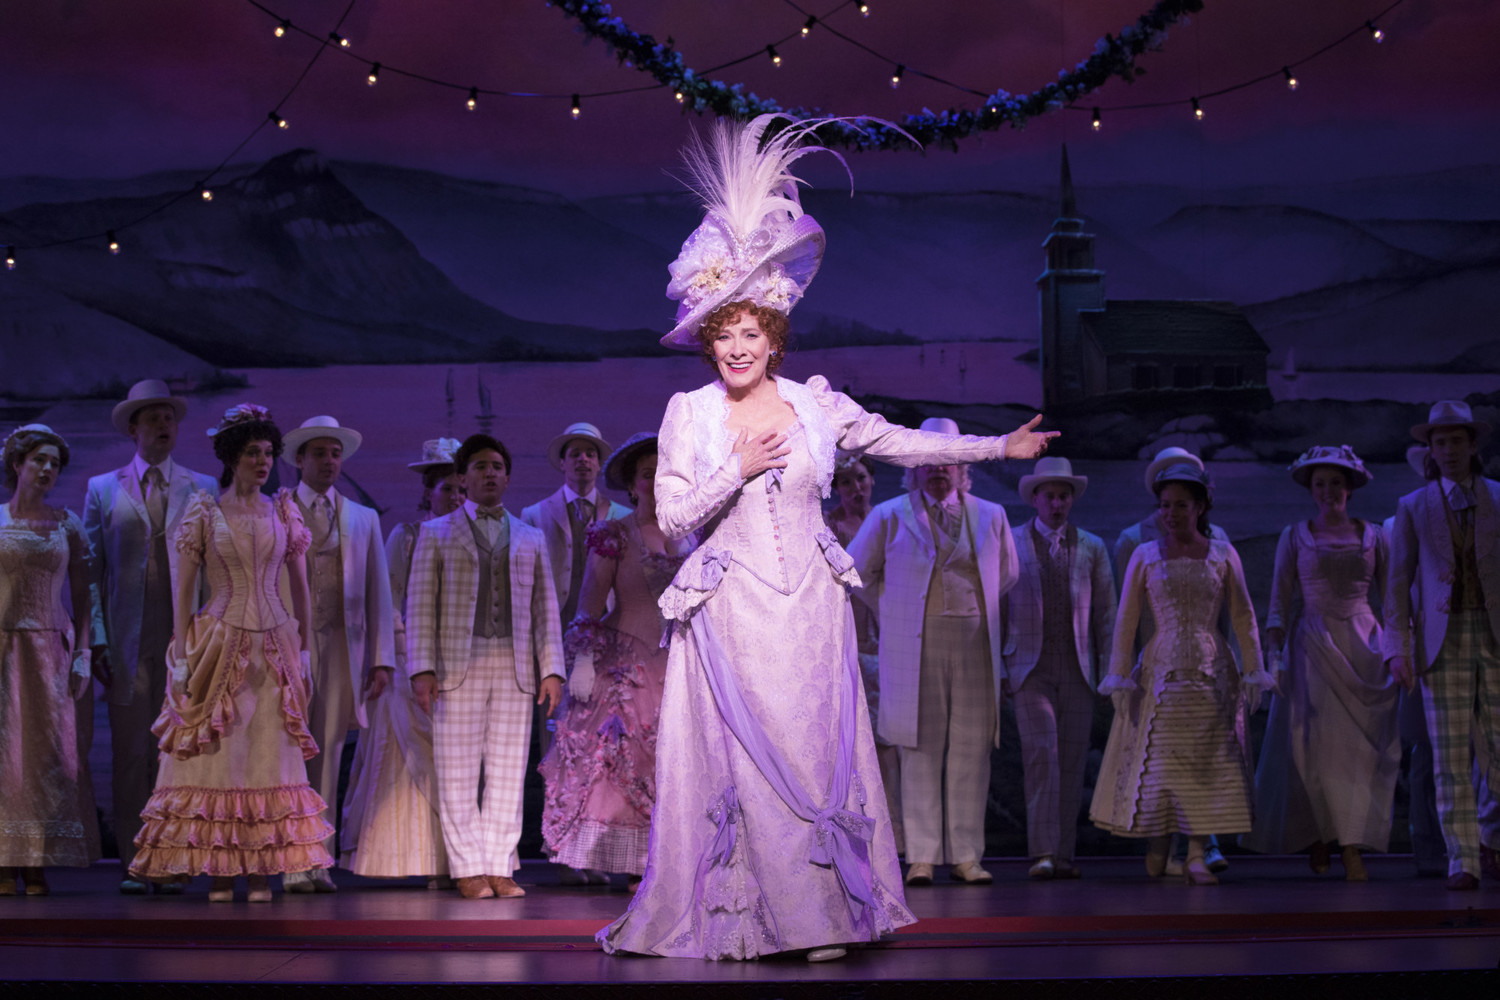 BWW Review: HELLO, DOLLY! at Dr. Phillips Center Reminds Us the World Is 'Full of Wonderful Things'